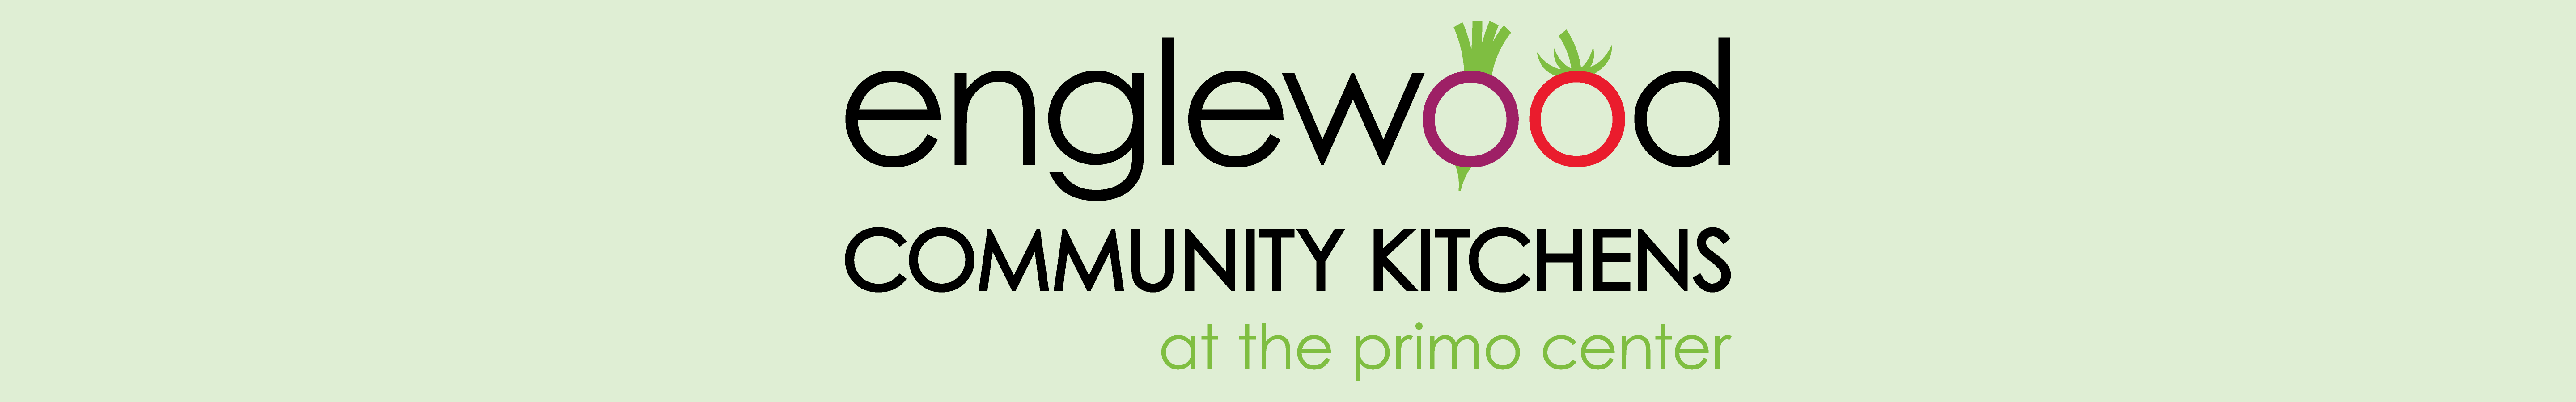 Englewood Community Kitchens banner with logo